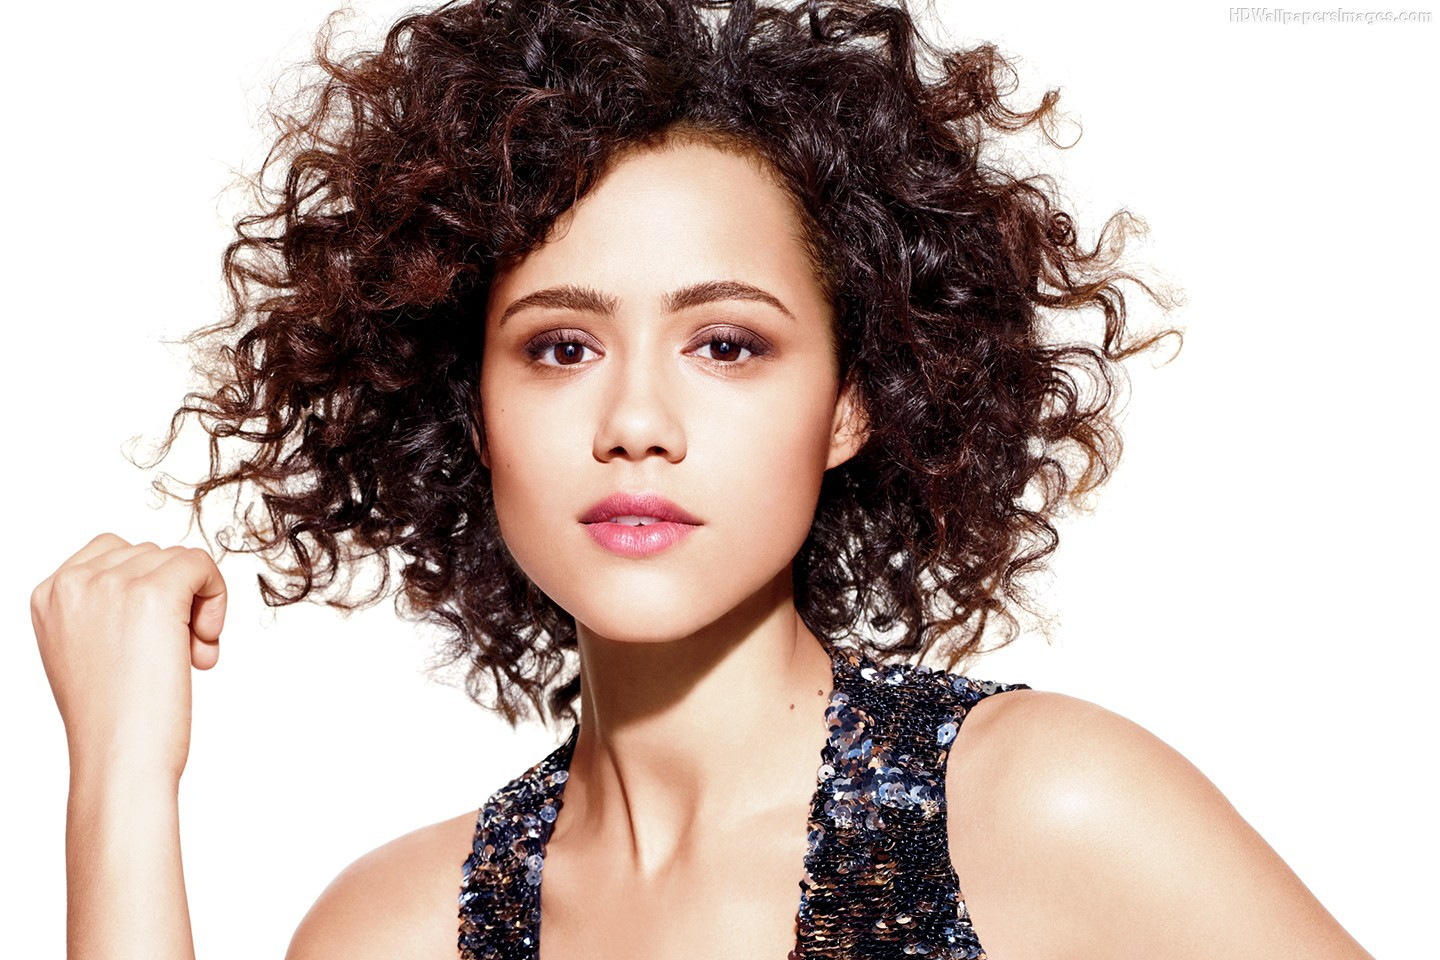 nathalie emmanuel, game of thrones star, is vegan | vegetarians of